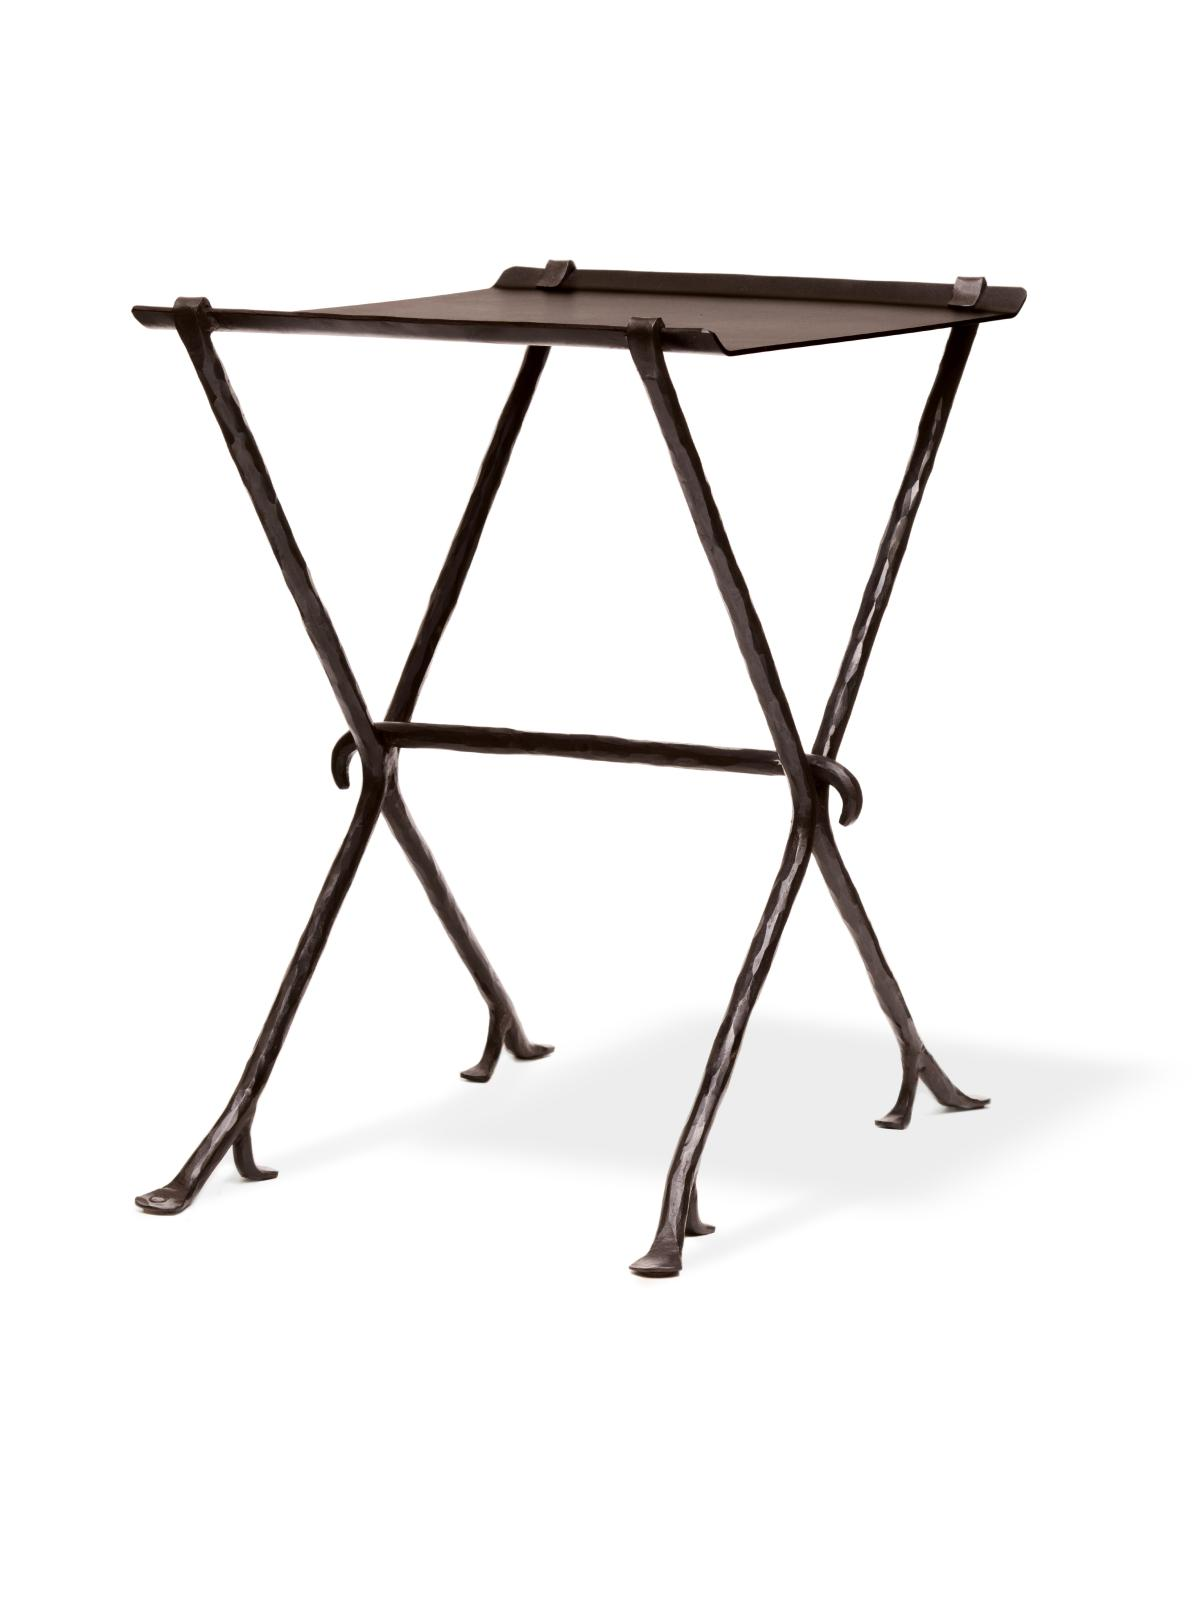 Garouste and Bonetti's Isis table, created in 1990 and still in production.